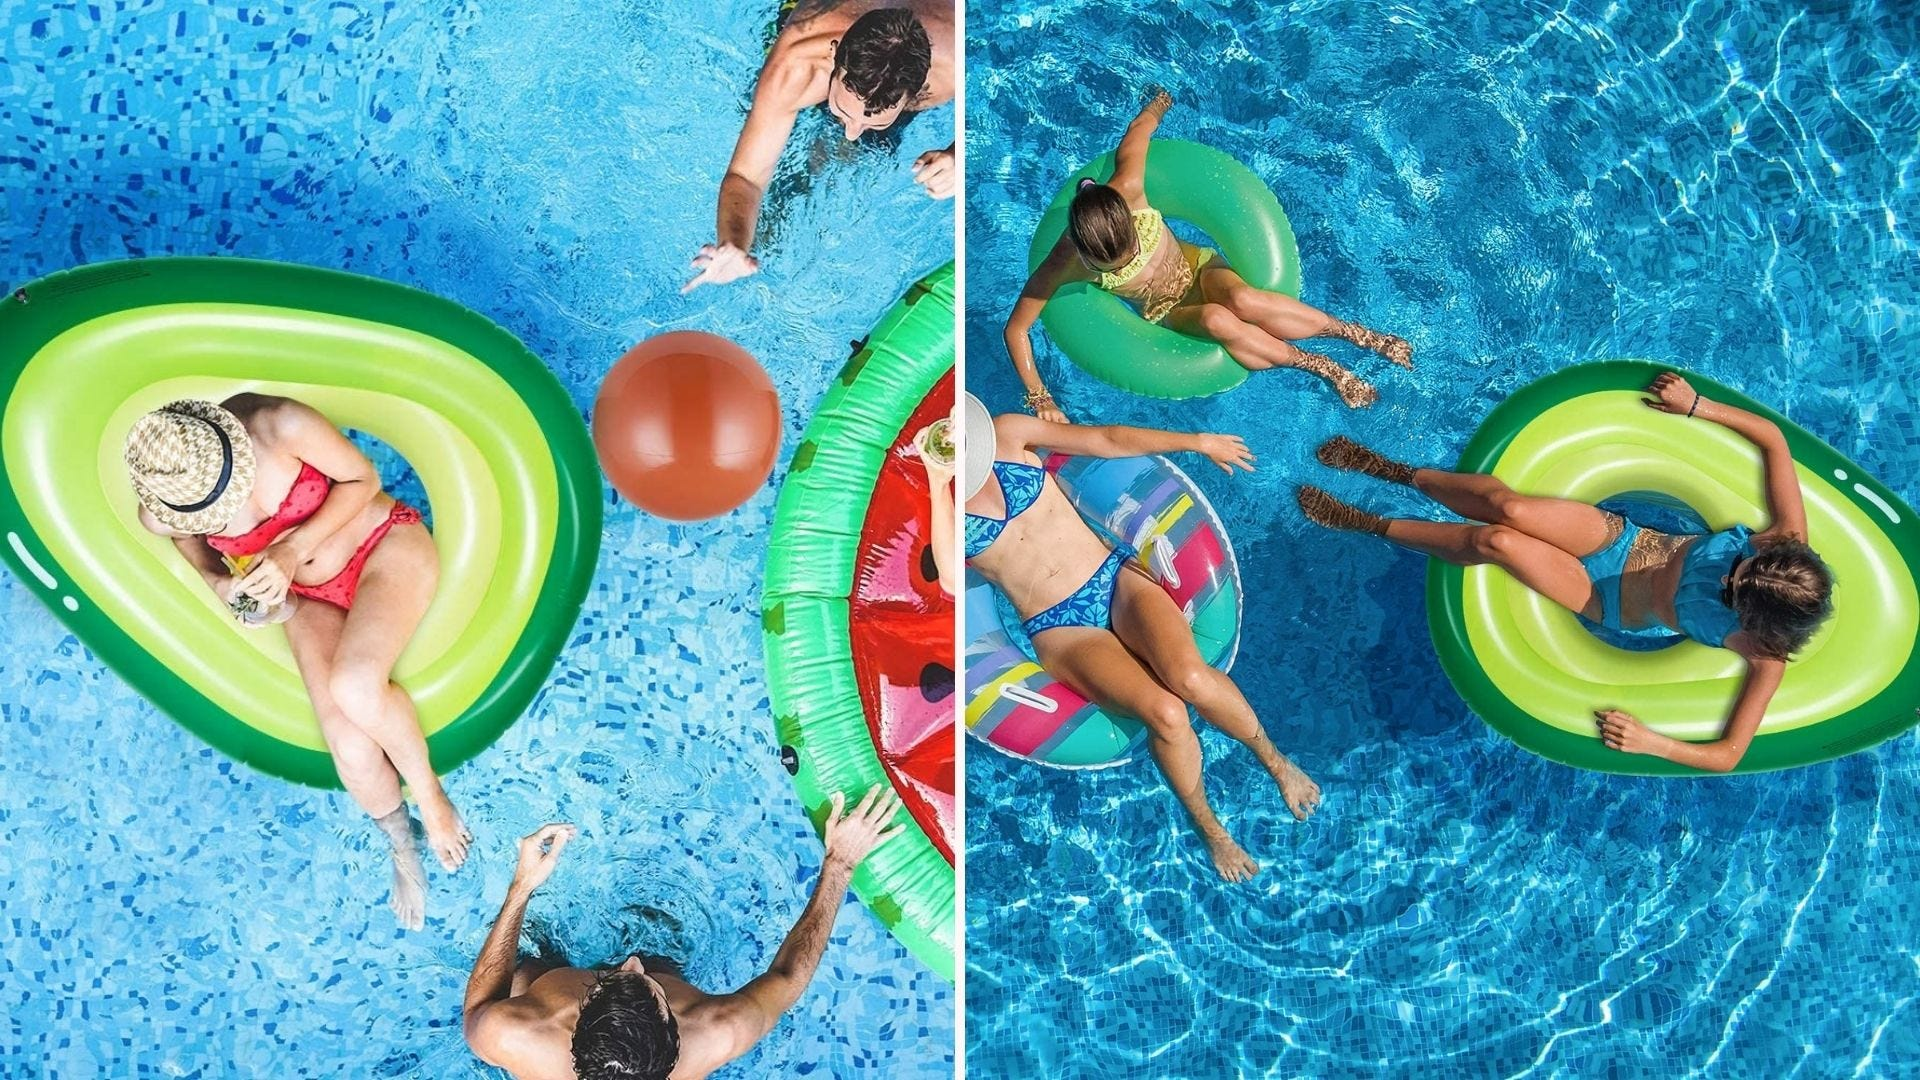 Women lounging in a pool on avocado-shaped pool floats